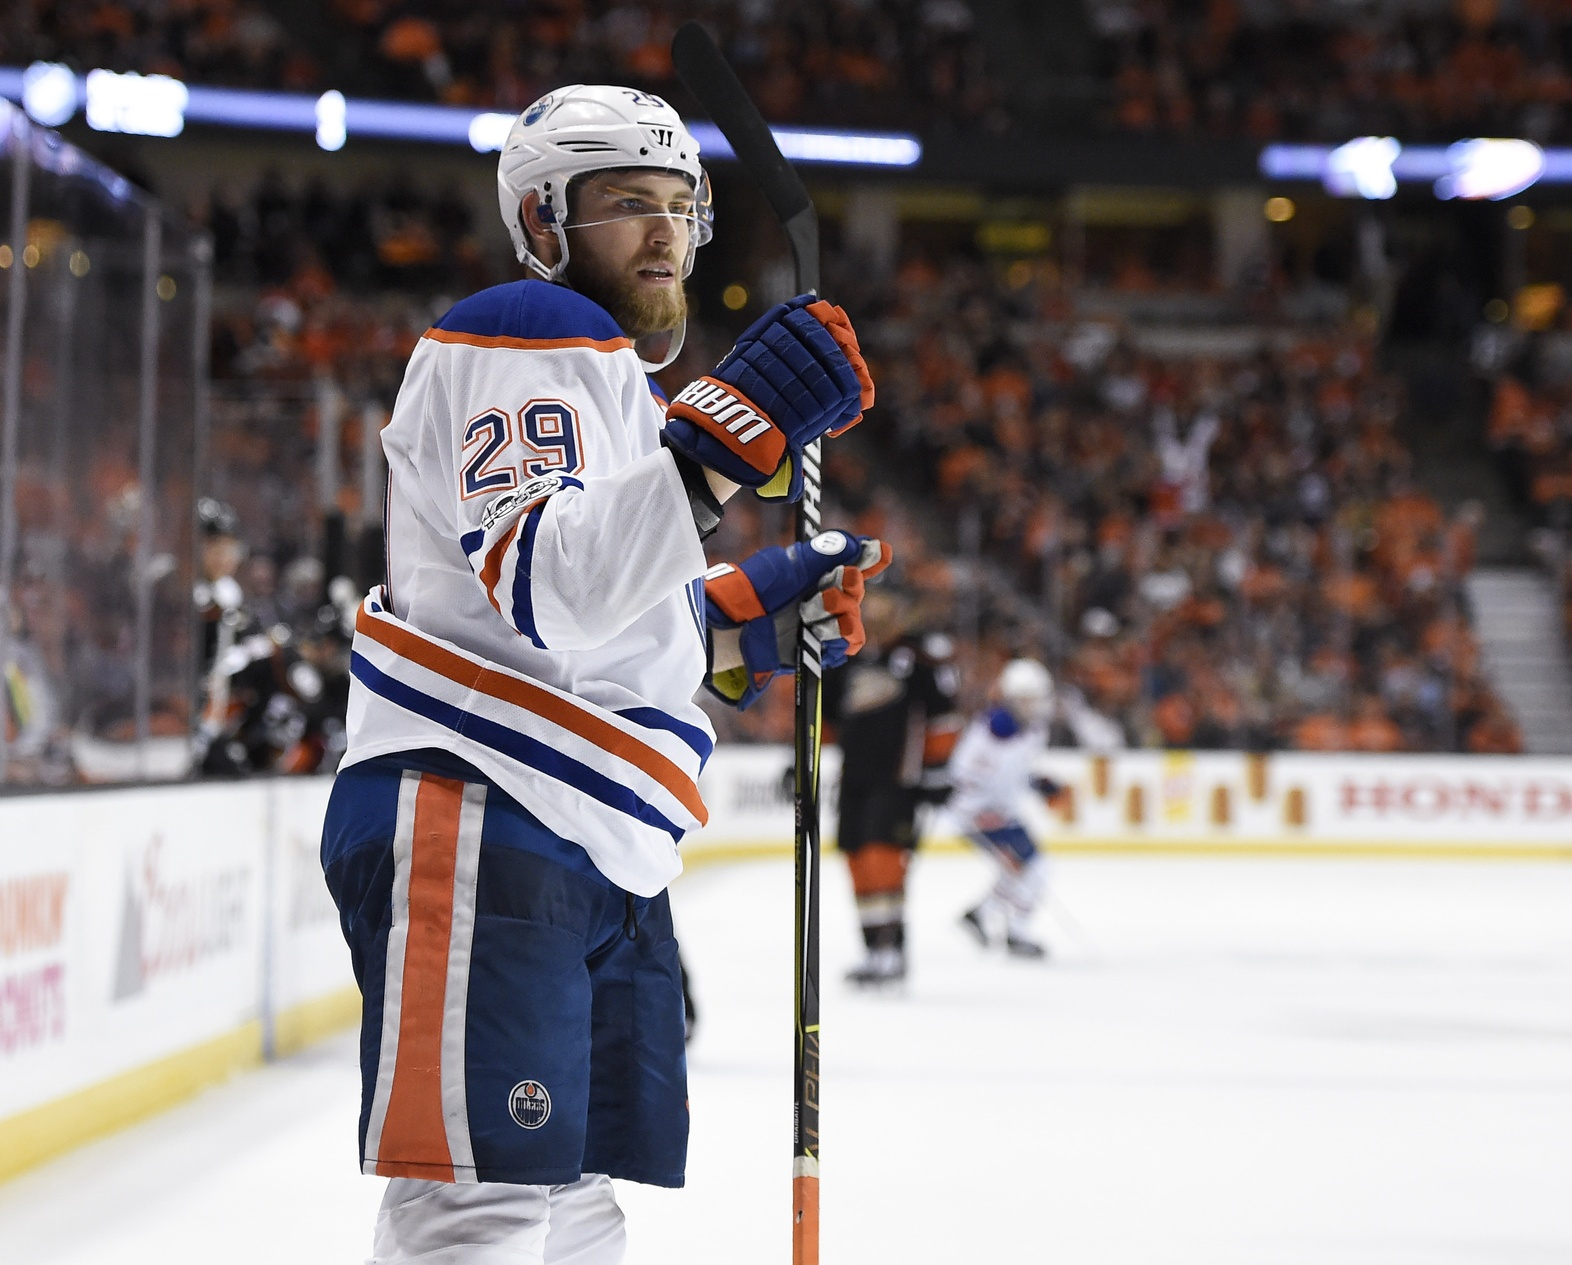 NHL: Edmonton Oilers sign D Eric Gryba to two-year extension